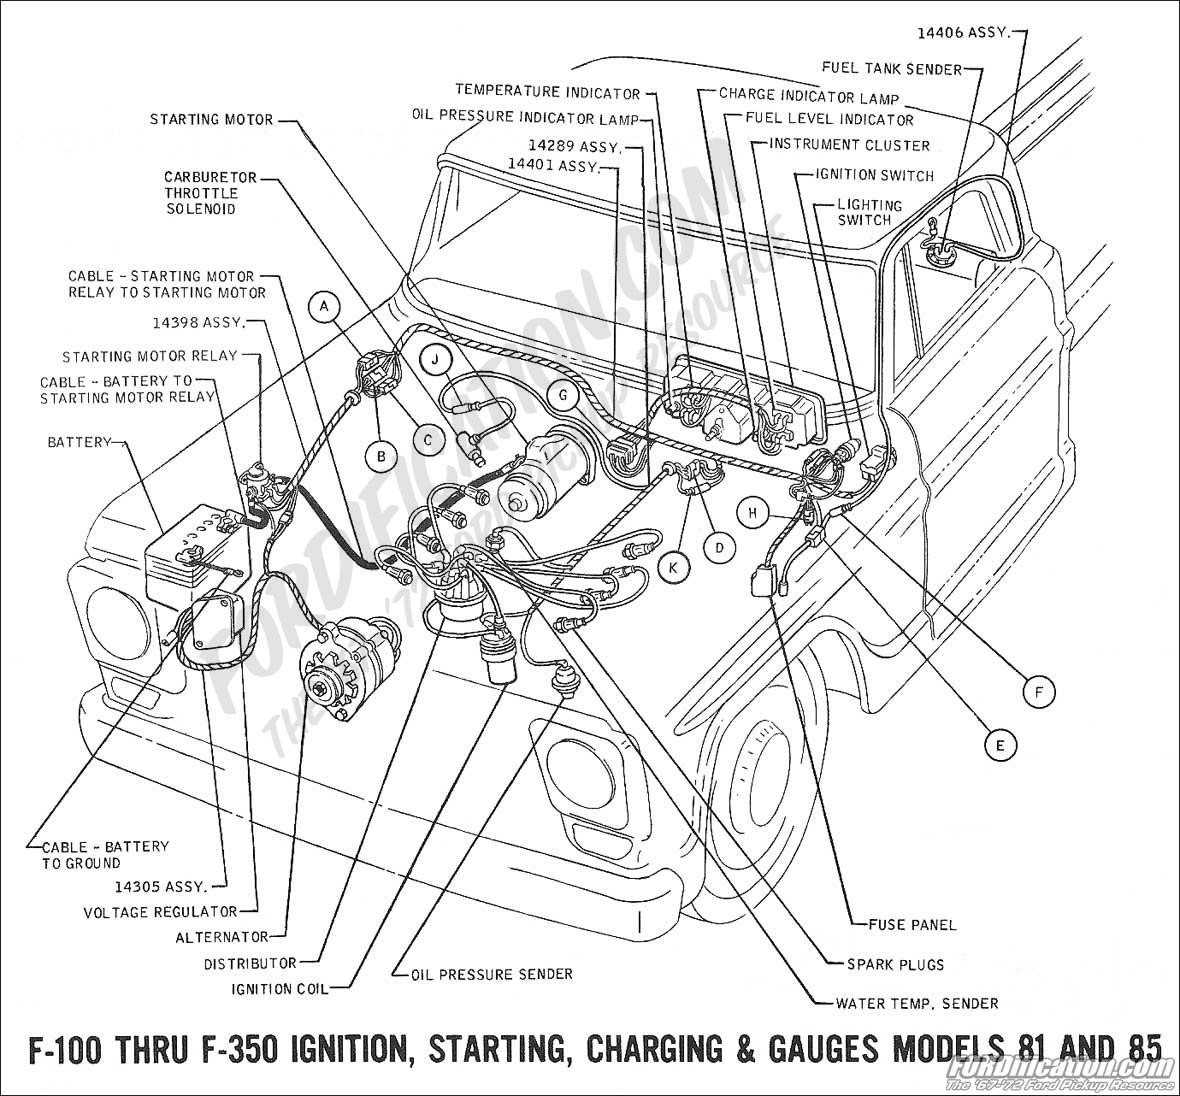 1964 Chevelle Ss Fuse Box furthermore 7nhd5 Need Wireing Diagram Wiper Motor Switch in addition Diagrams further 5wsms Ford F100 When Try Start 67 Ford Pickup No Action moreover 1967 Chevelle Body Diagram. on 1964 corvette ignition wiring diagram